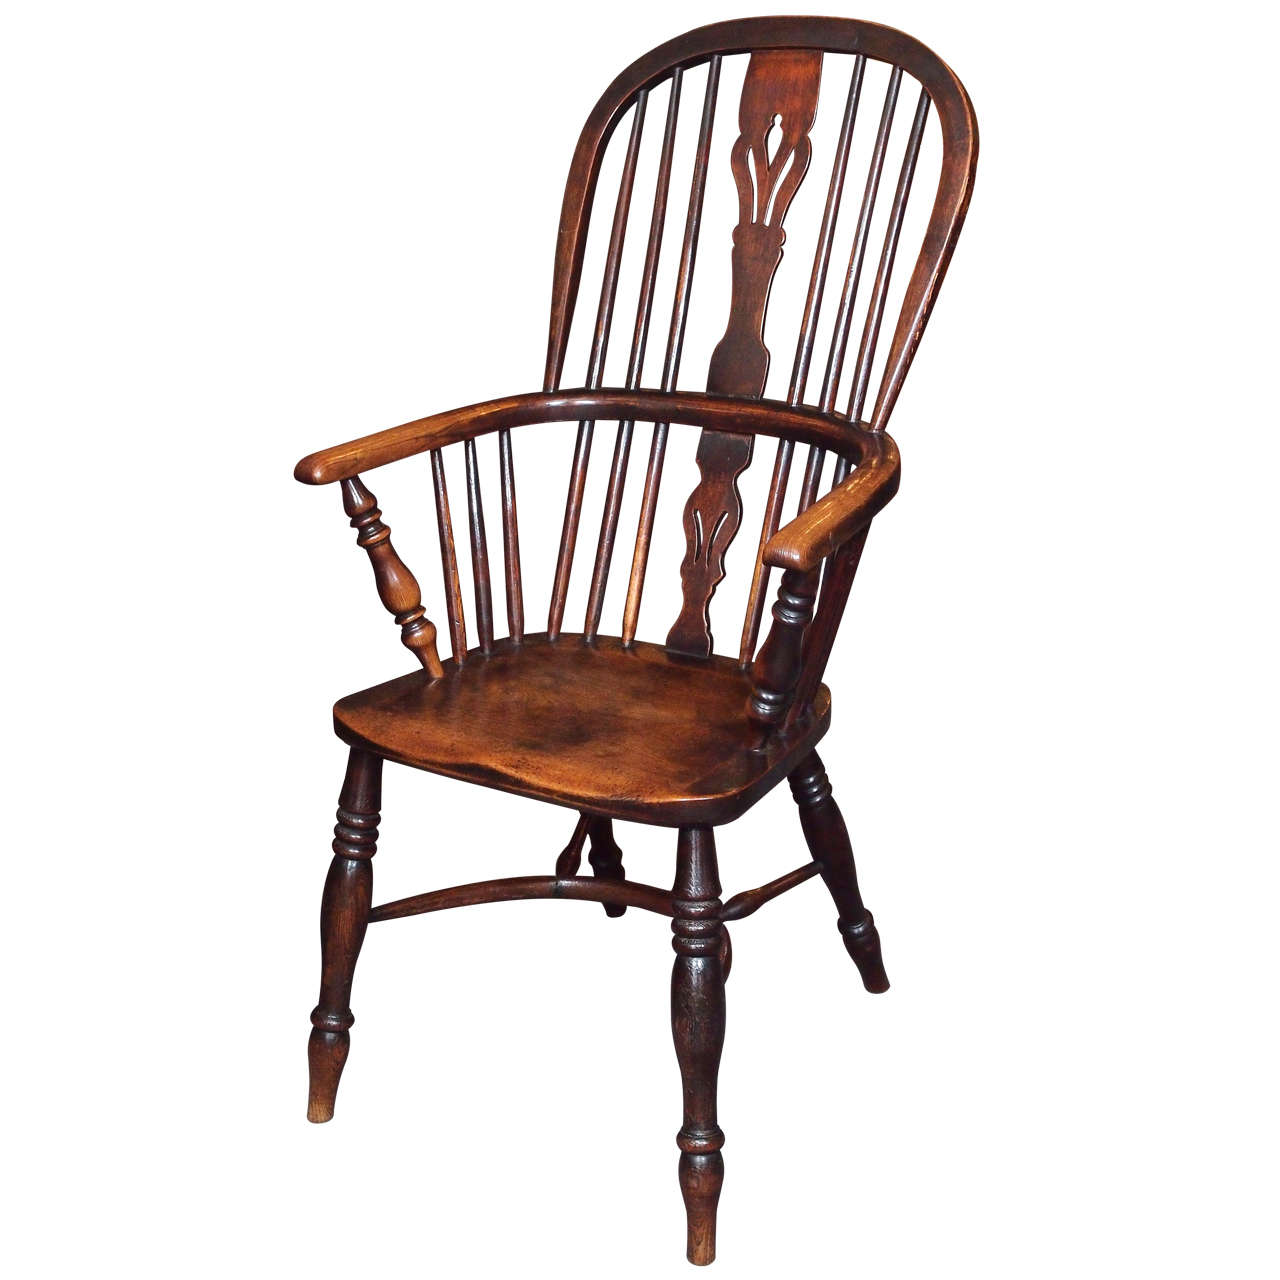 Stretcher Chair Antique English Elm And Ash Windsor Chair With Crinoline